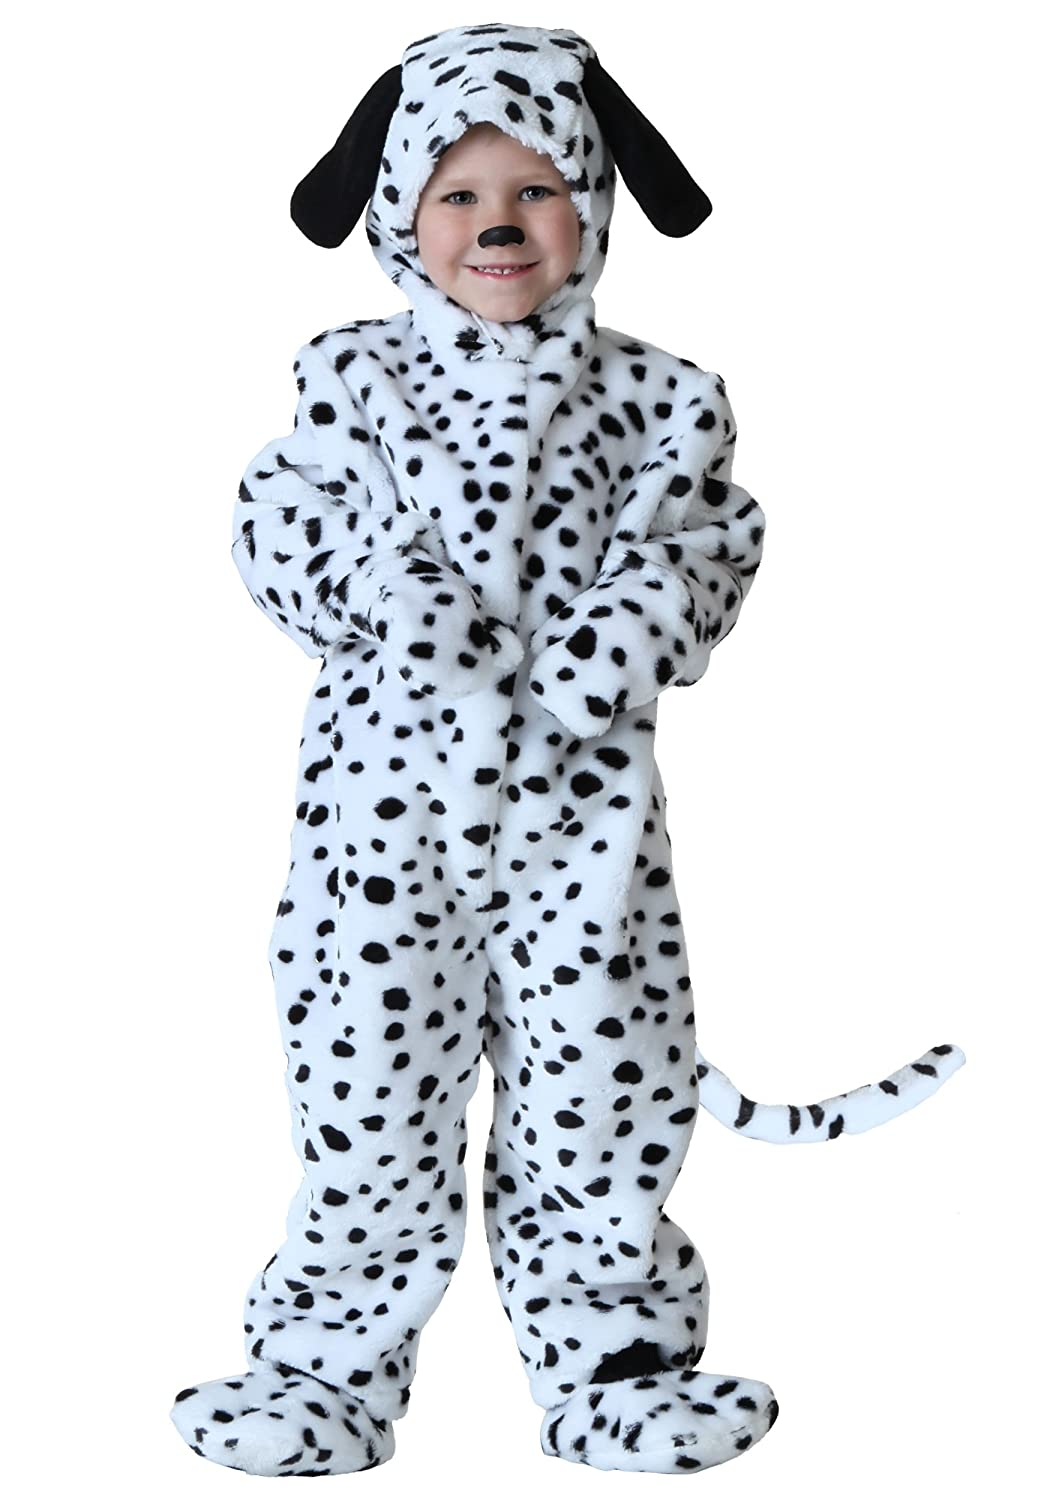 Doggy Little Boy's Spotted Dalmatian Pup Costume FUN Costumes